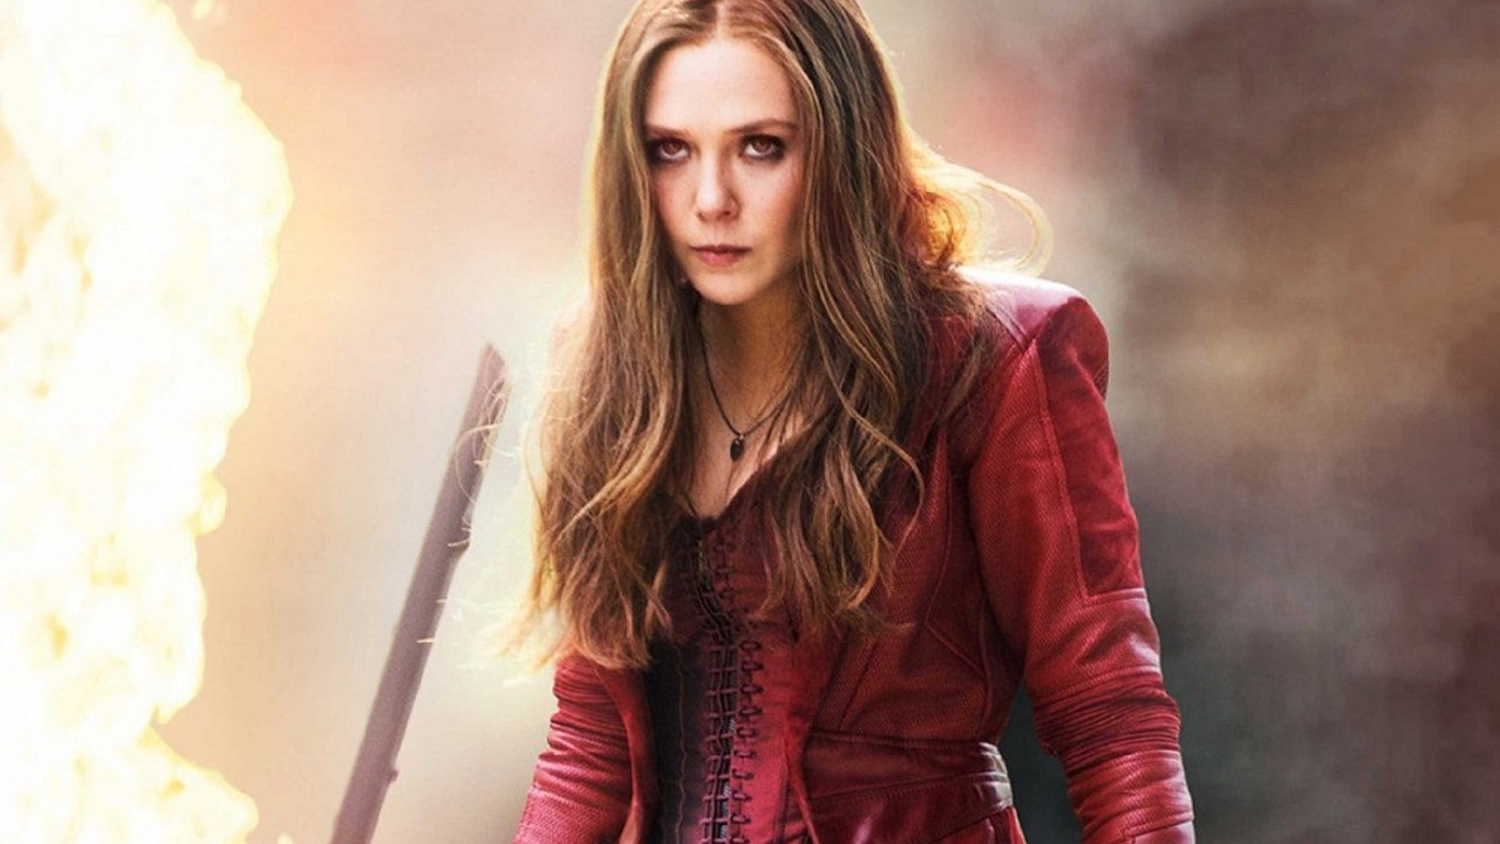 Elizabeth Olsen as Scarlett Witch